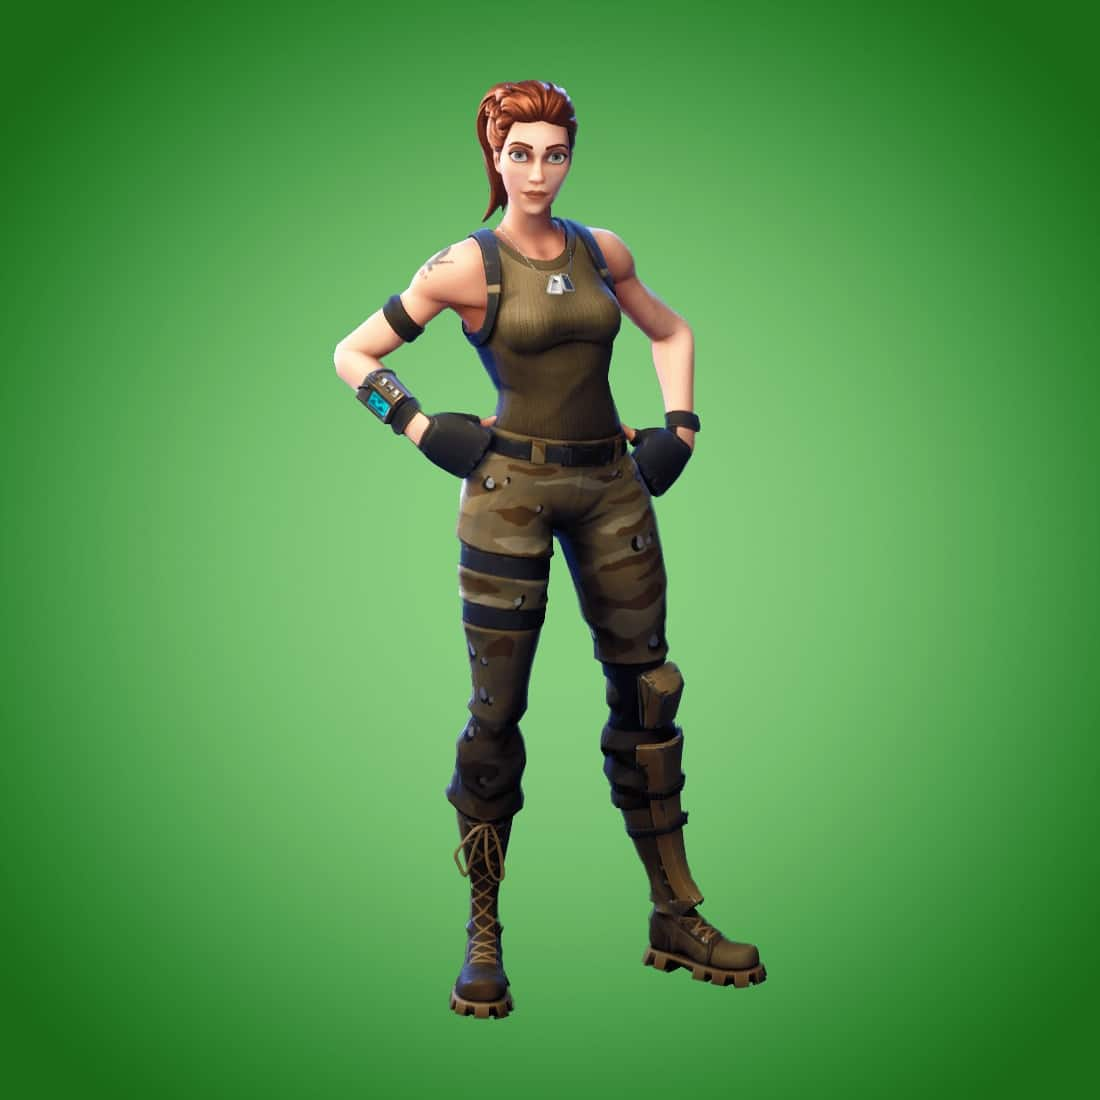 All Fortnite Skins & Characters [August 2018]